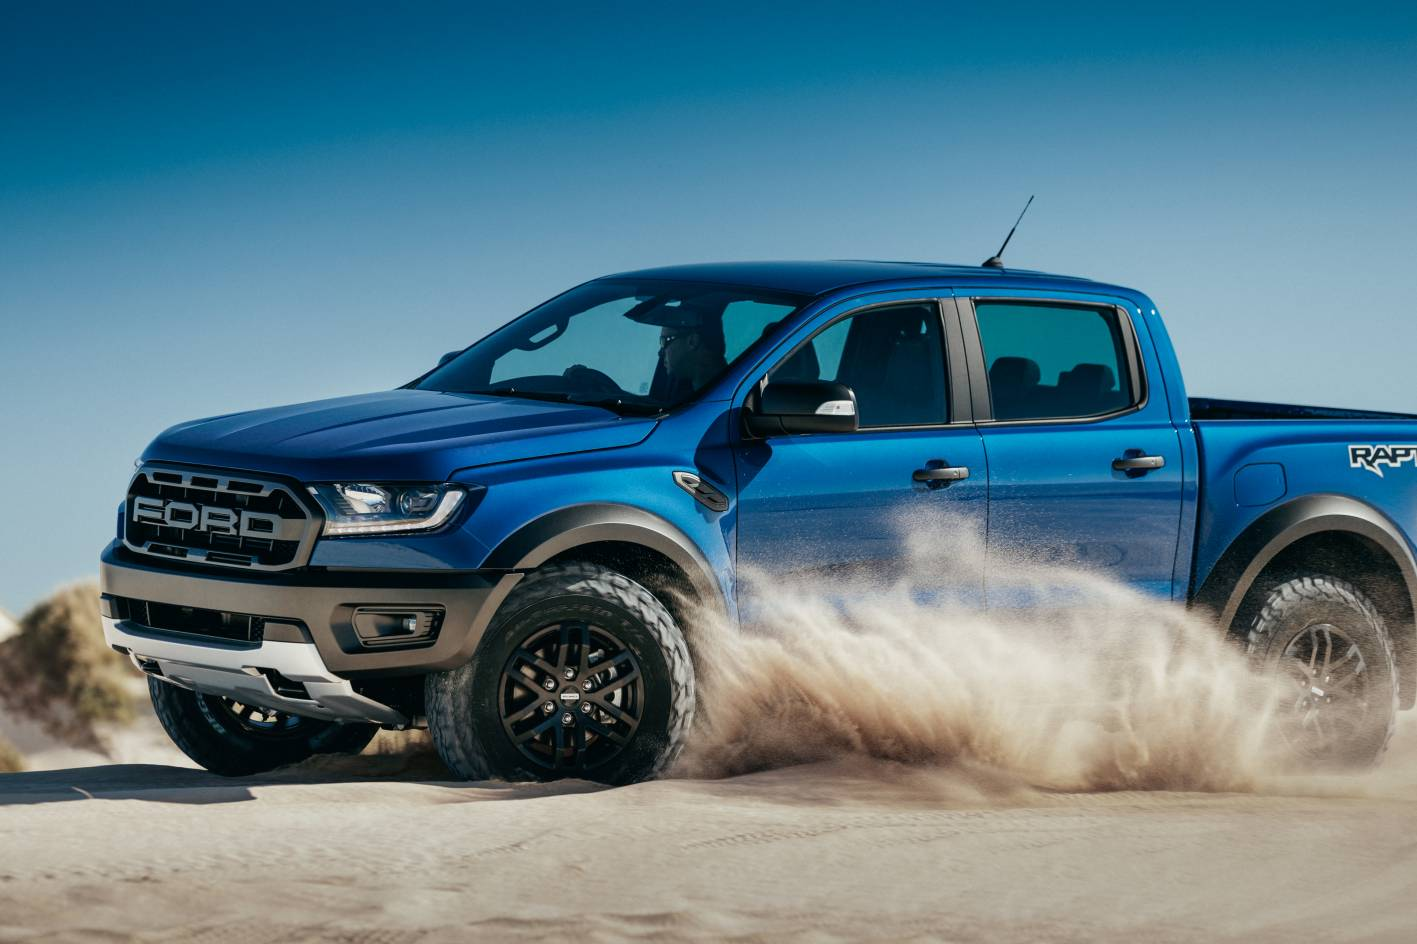 2018 Ford Ranger Raptor unleashed - ForceGT.com